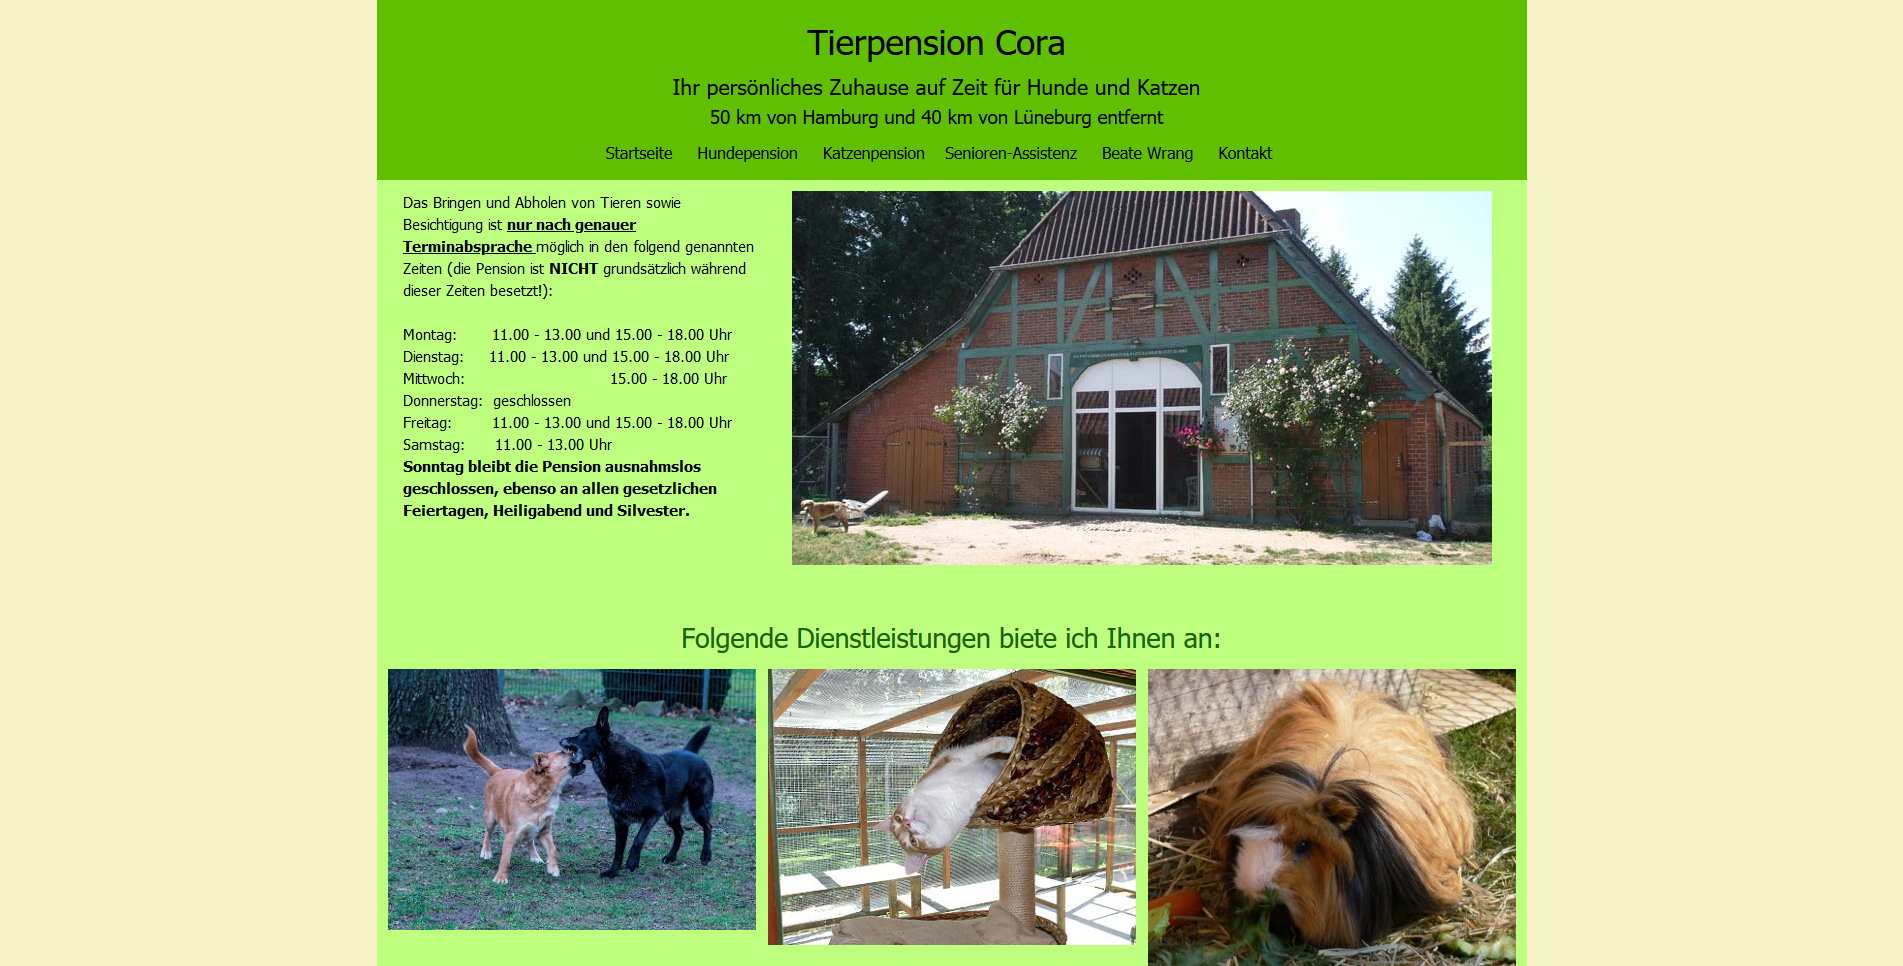 Tierpension Cora